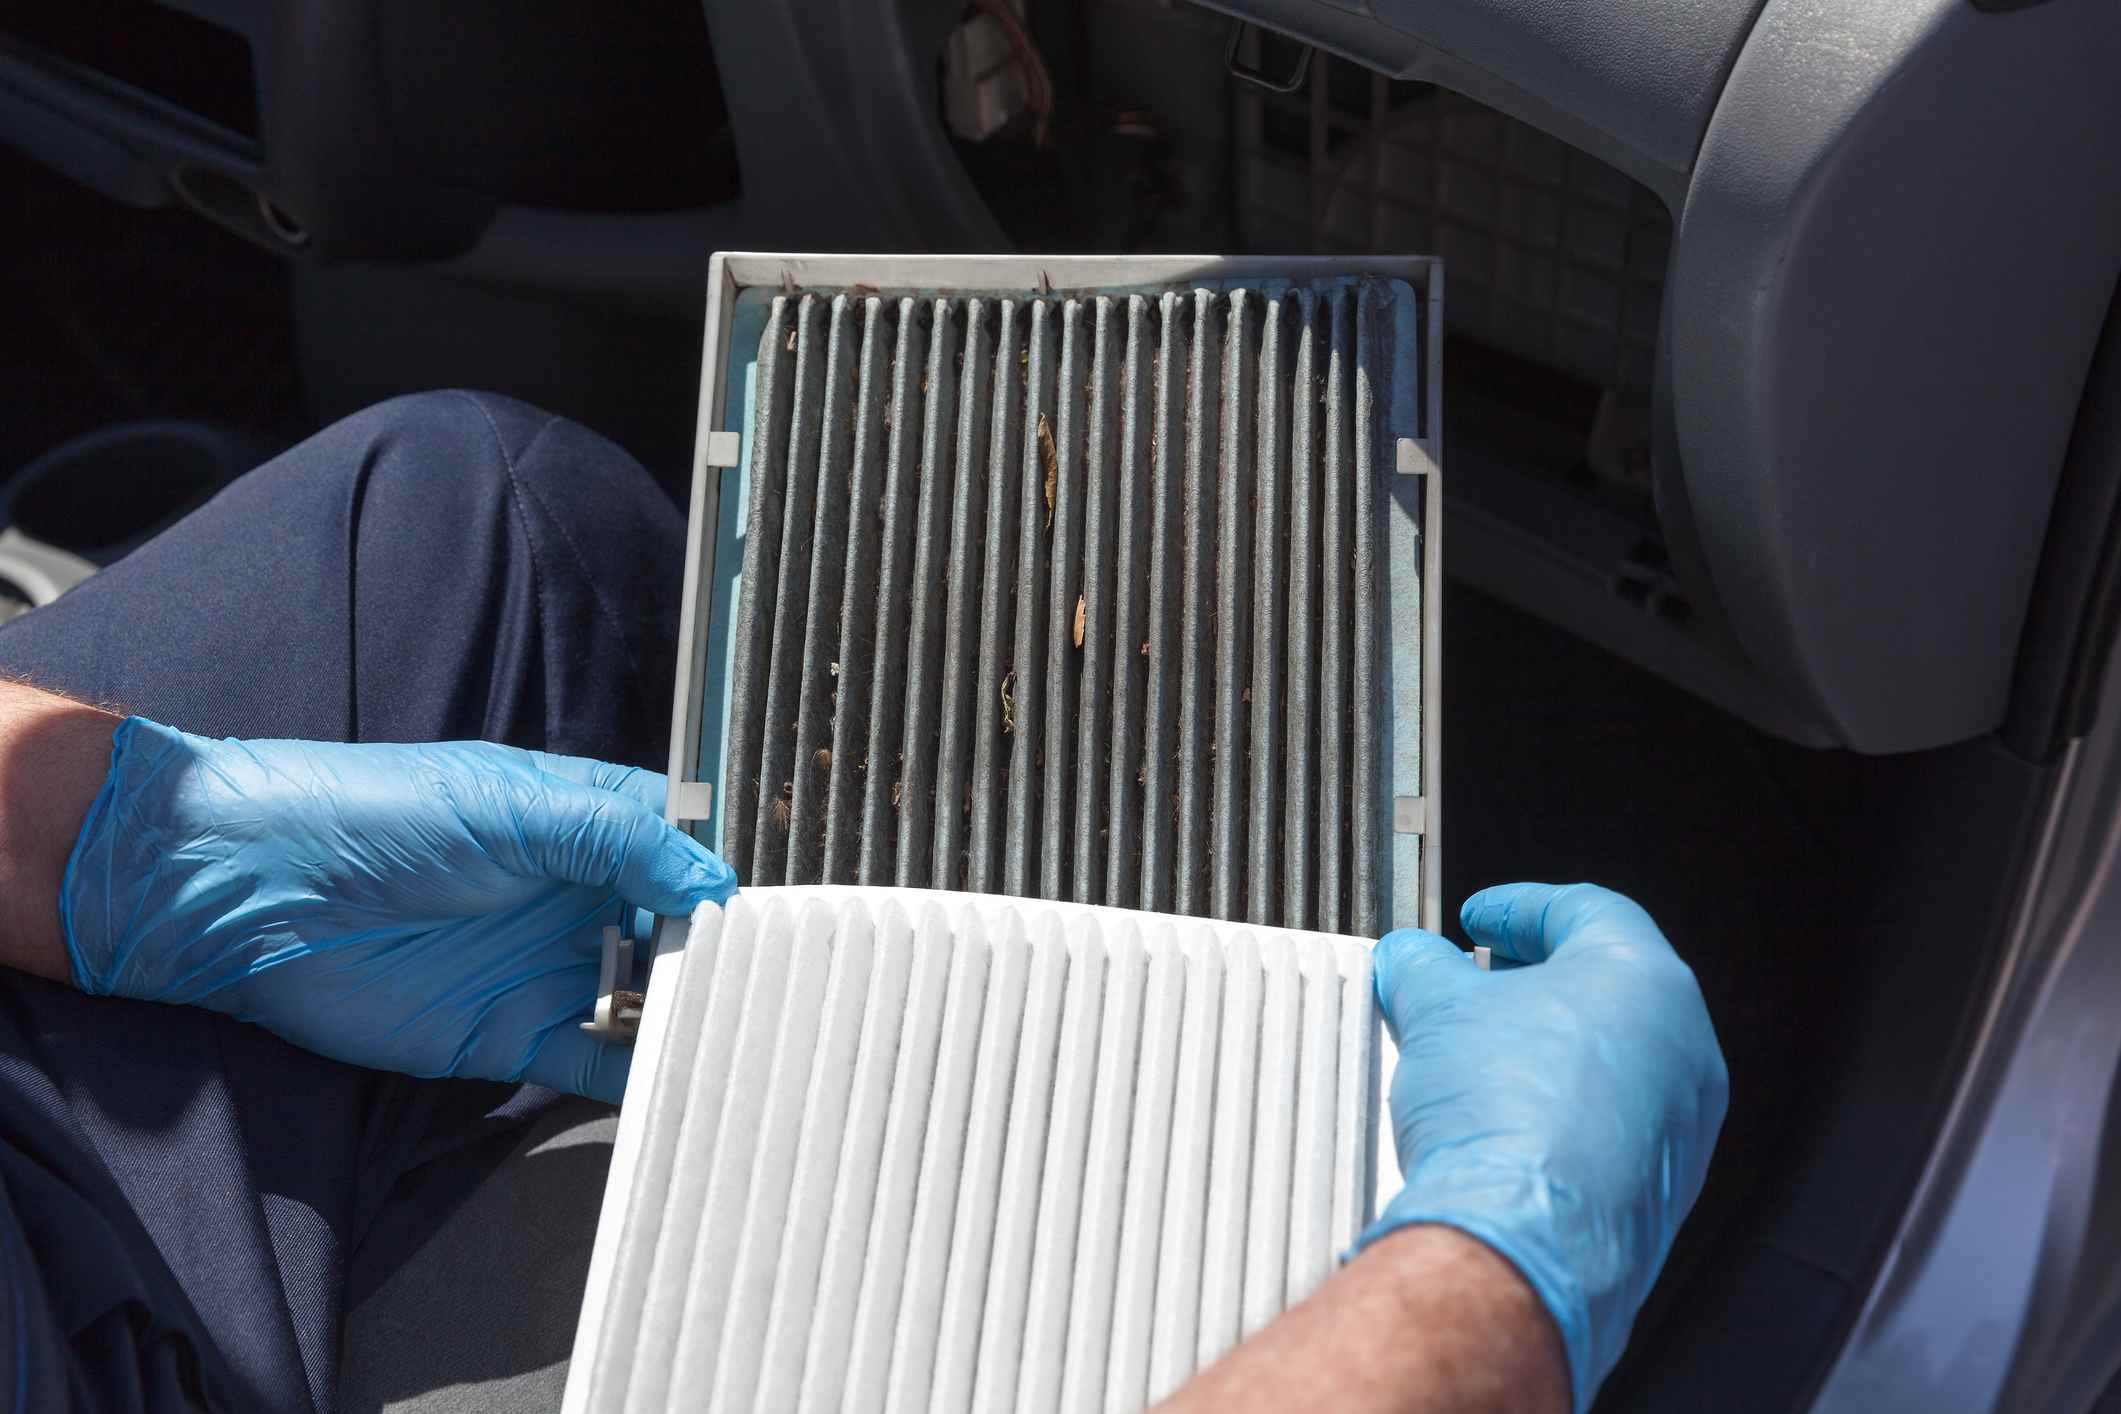 Cabin air filters work better than ionizers, but you need to replace them regularly.